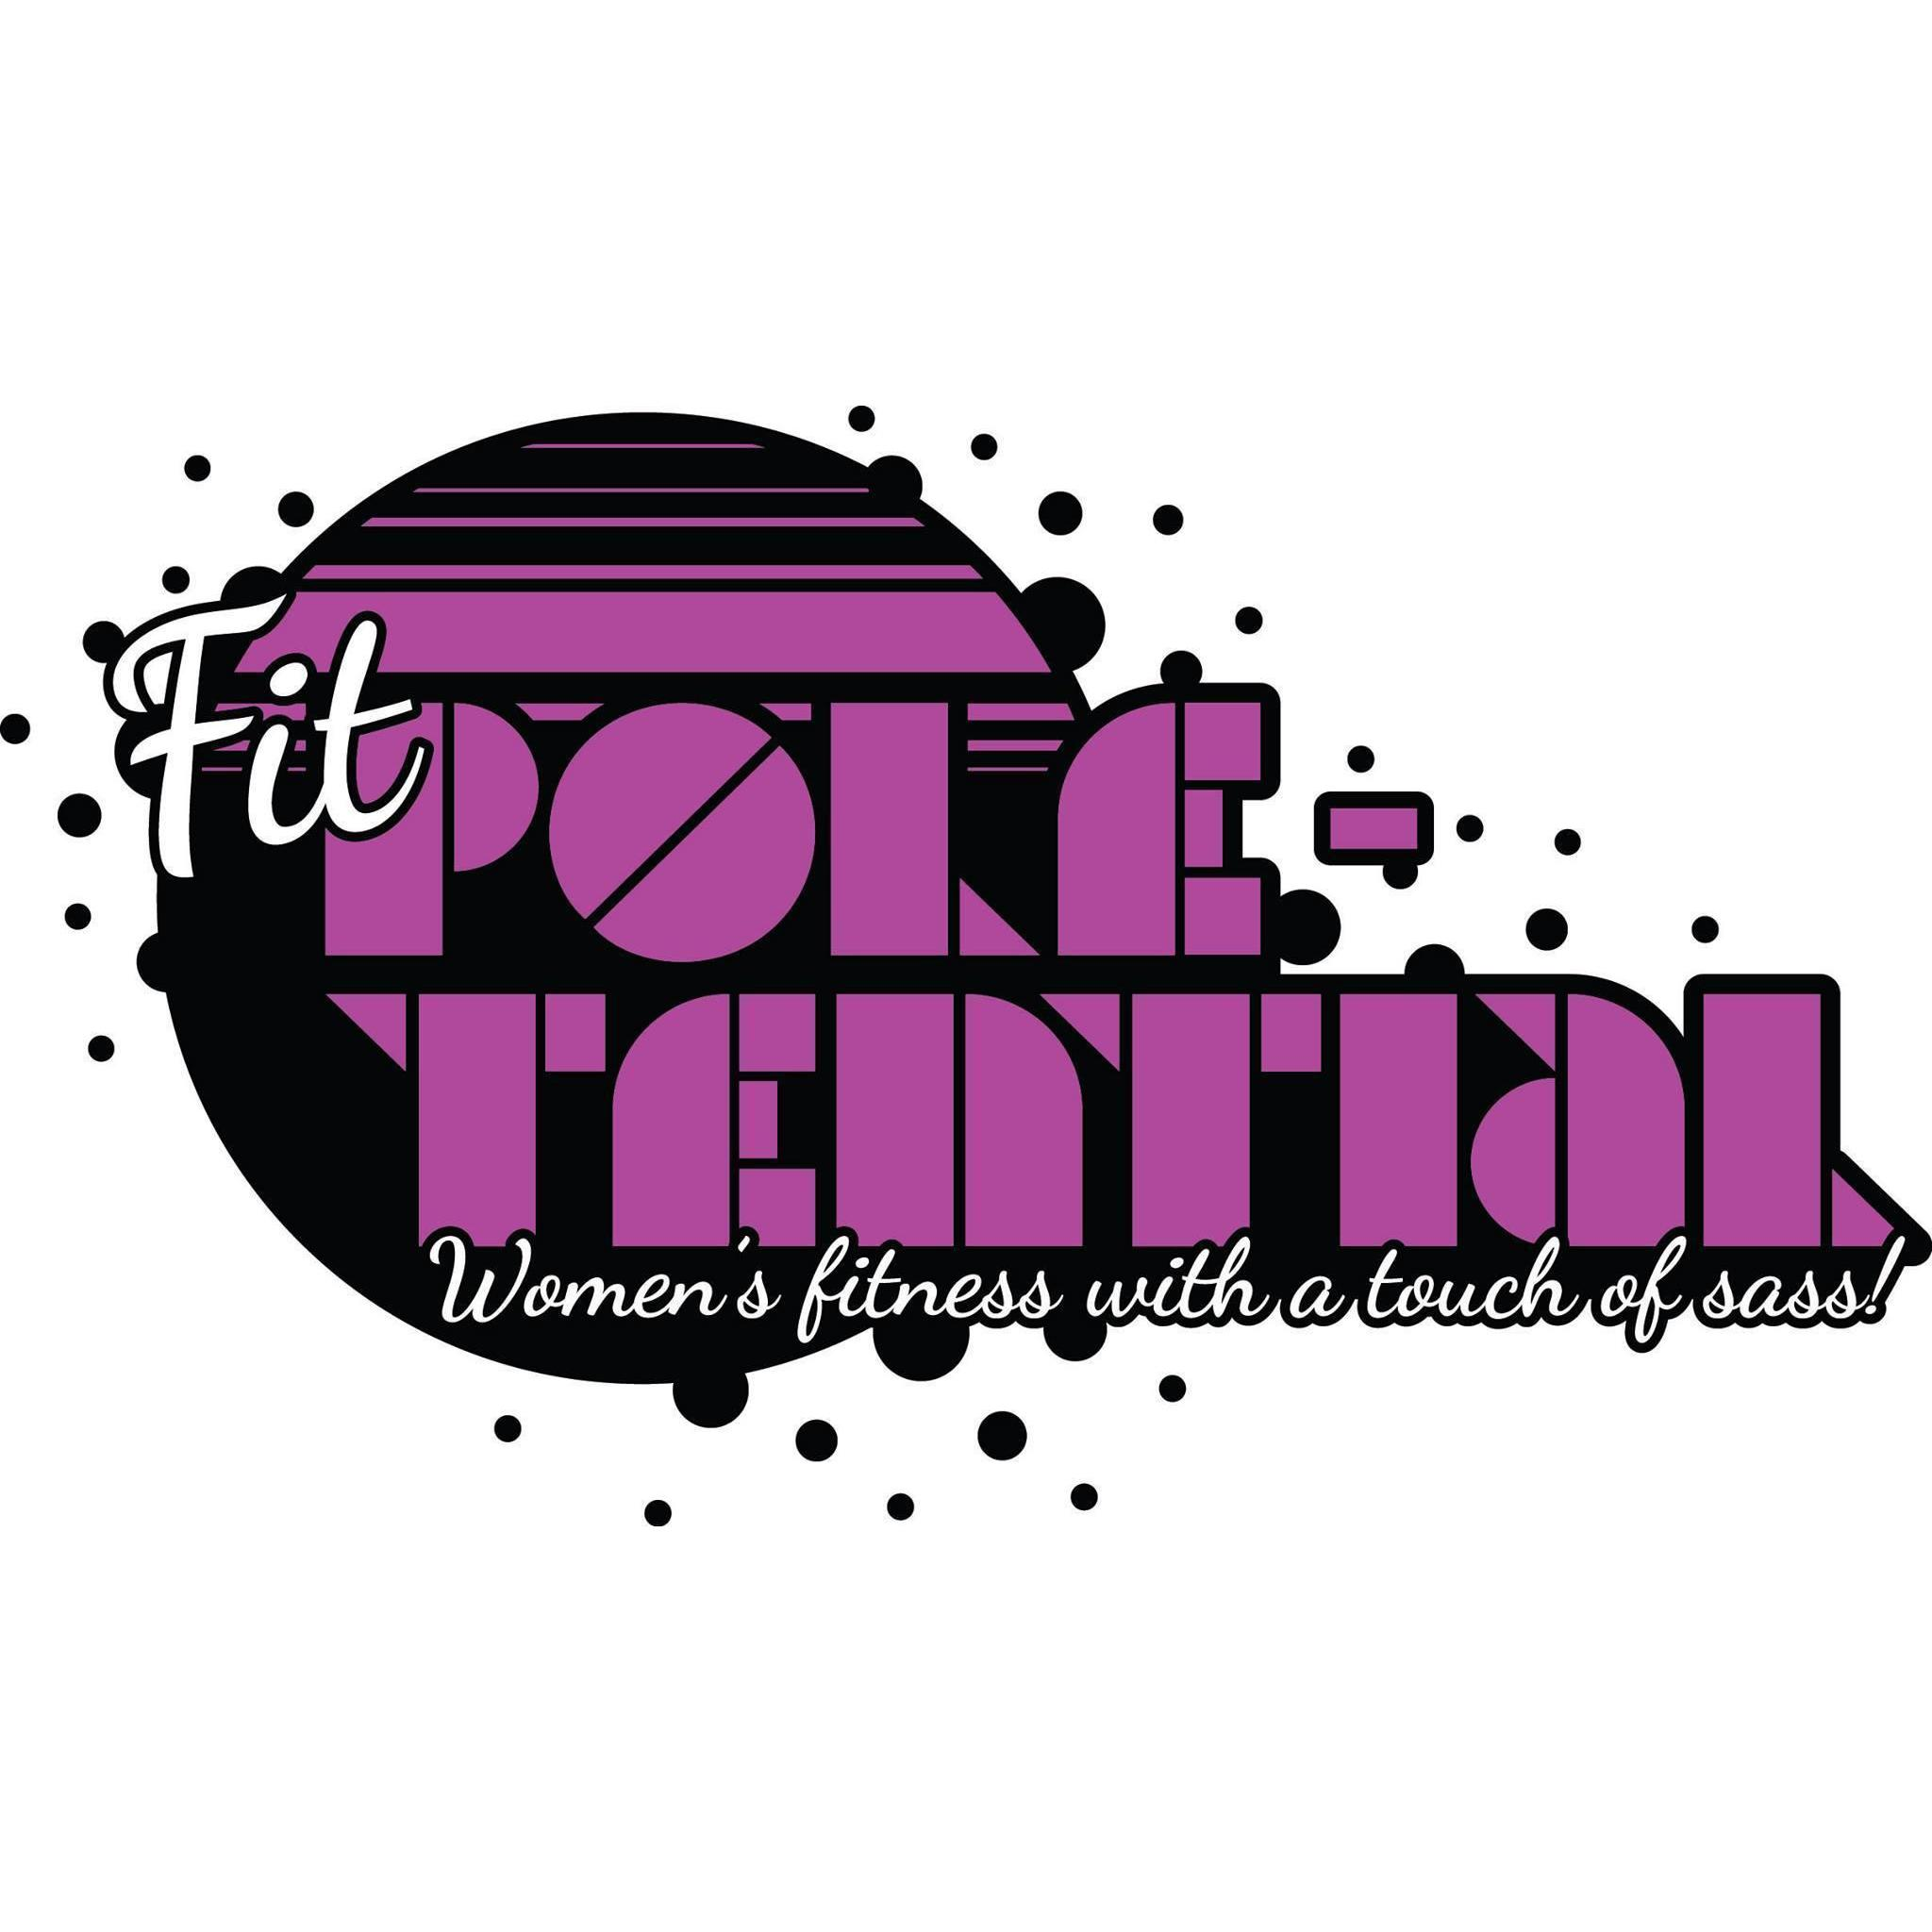 Fit Pole-tential